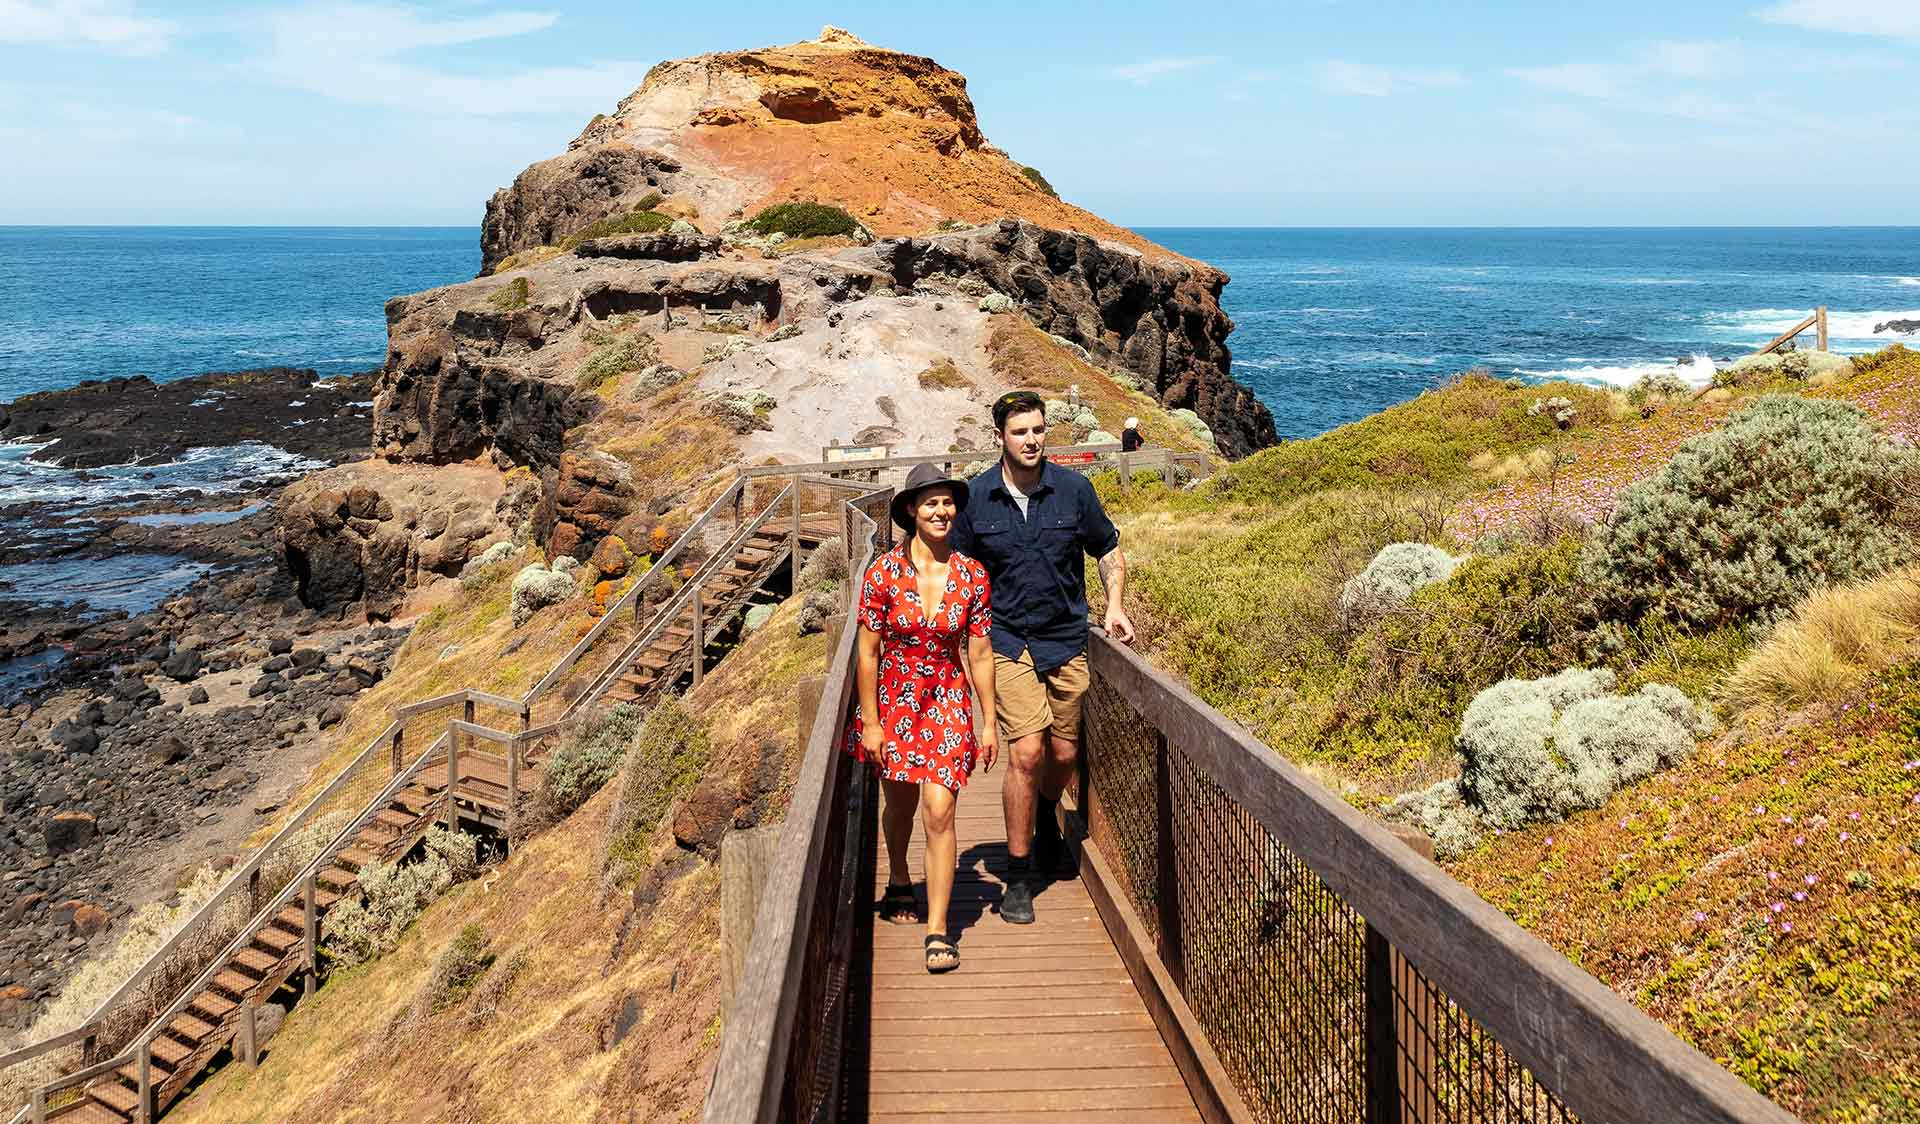 A young couple walk along the board walk at Cape Schank.